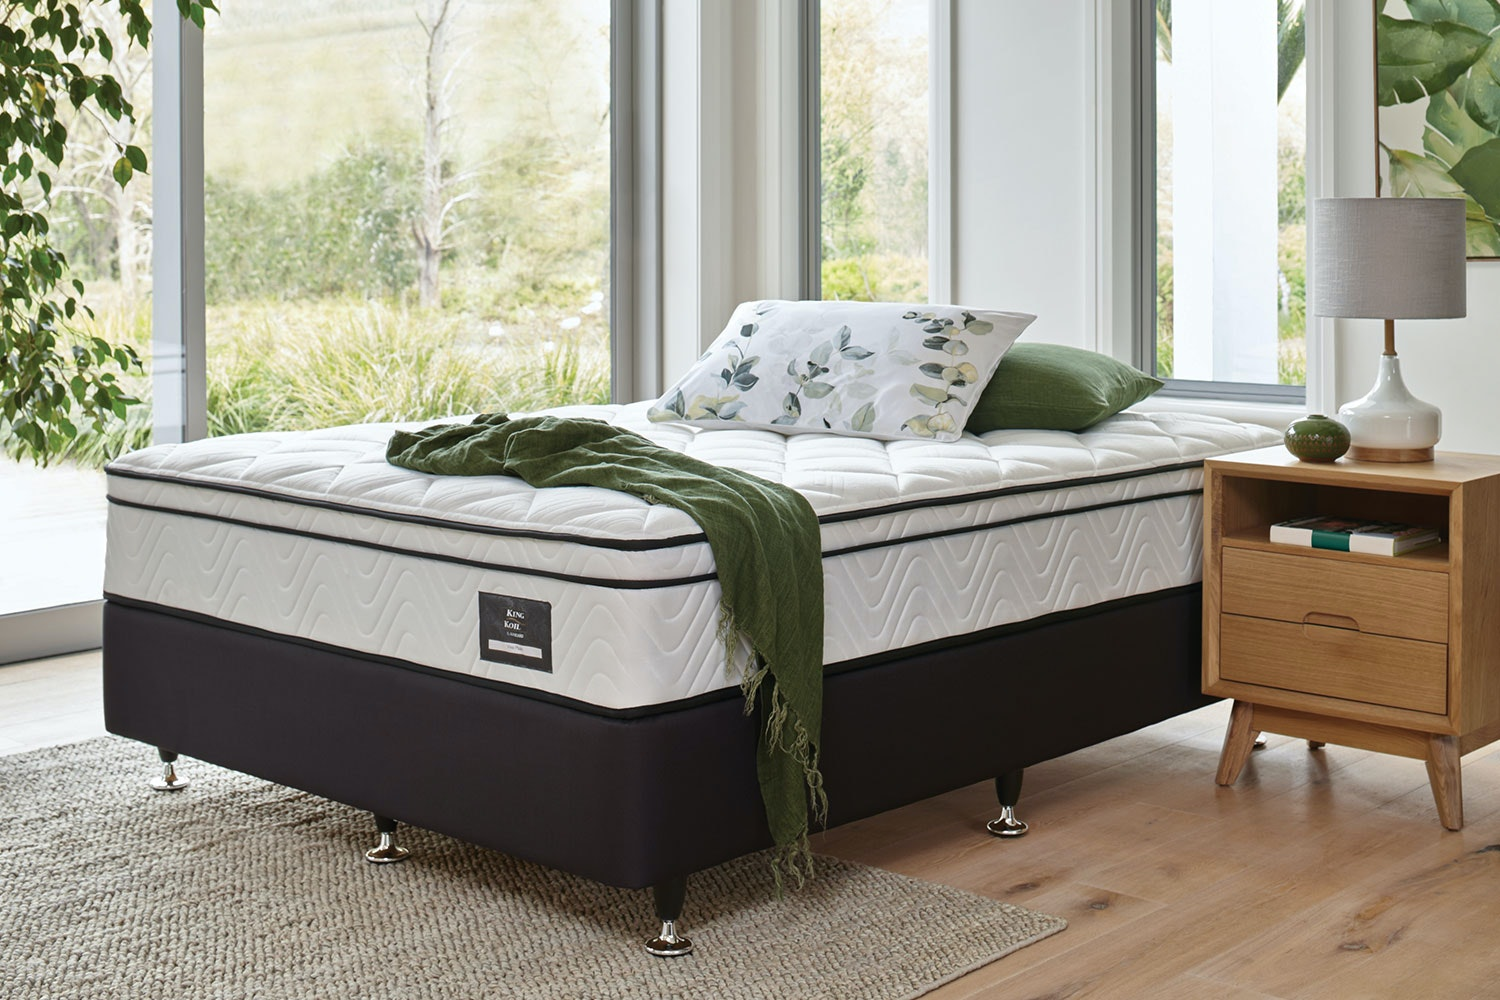 Viva Plush Queen Bed By King Koil